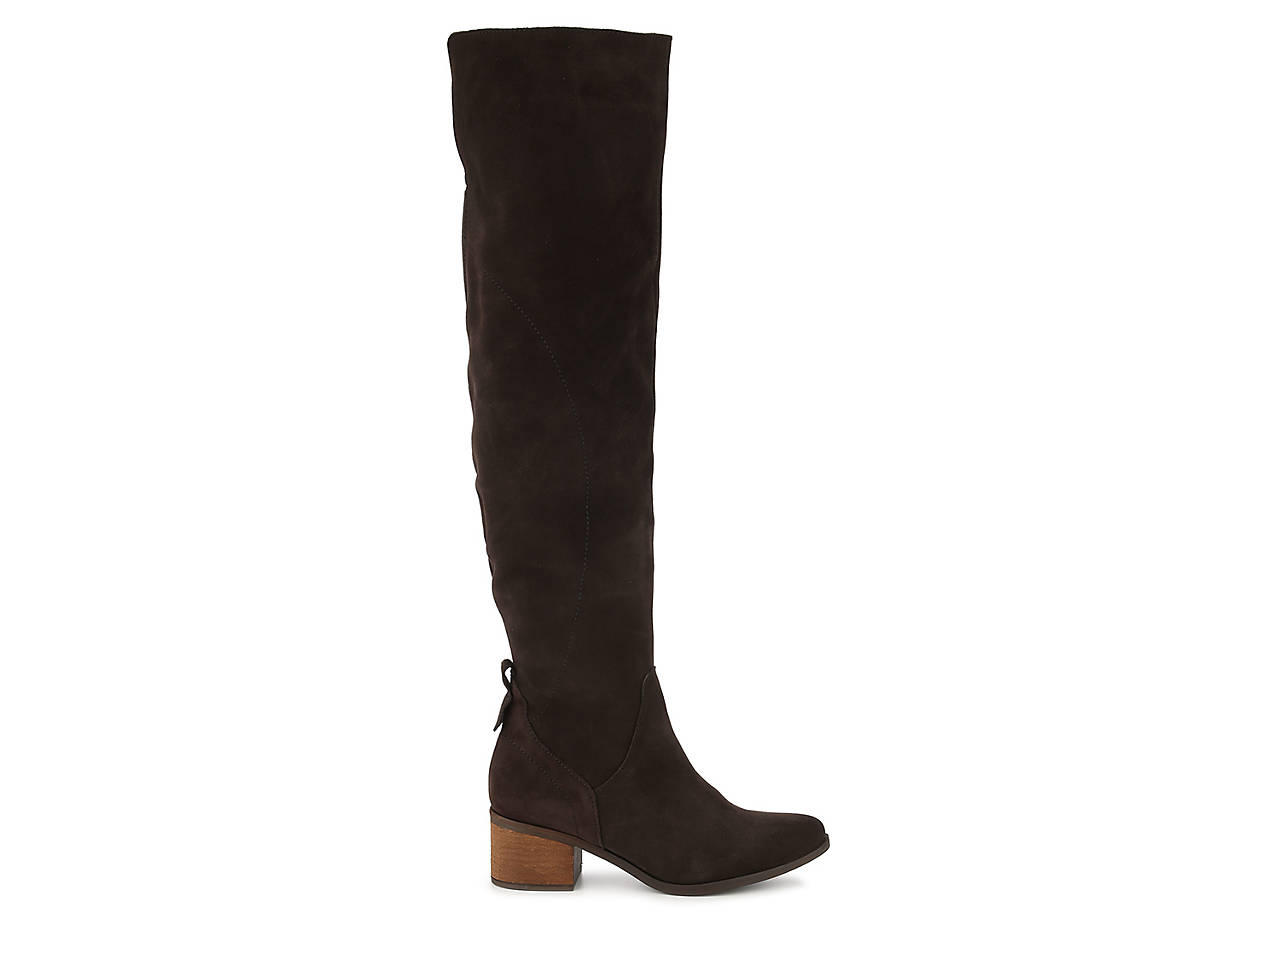 6cf5401f2e5 Steve Madden Purly Over The Knee Boot Women s Shoes